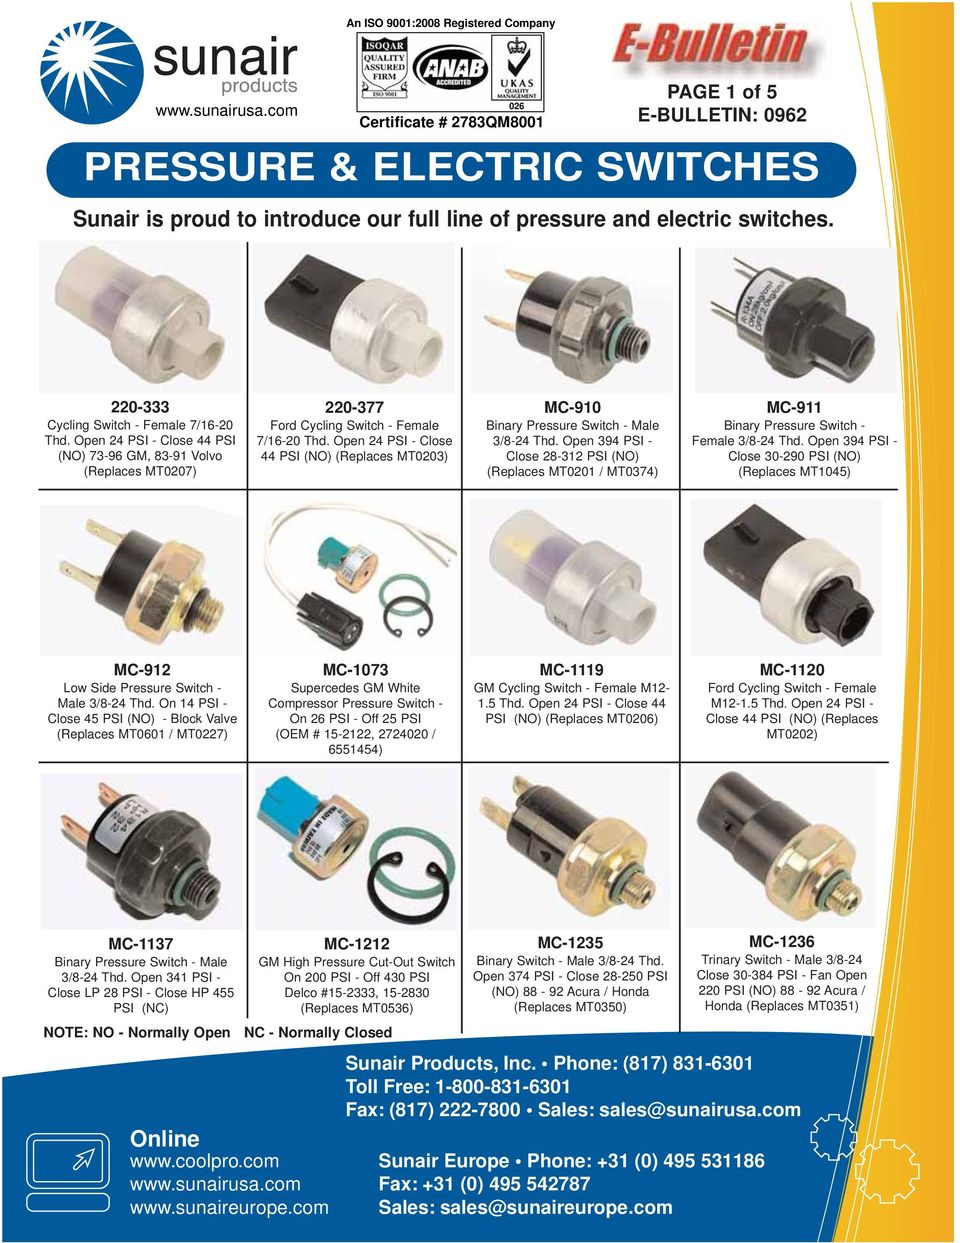 PRESSURE & ELECTRIC SWITCHES - PDF